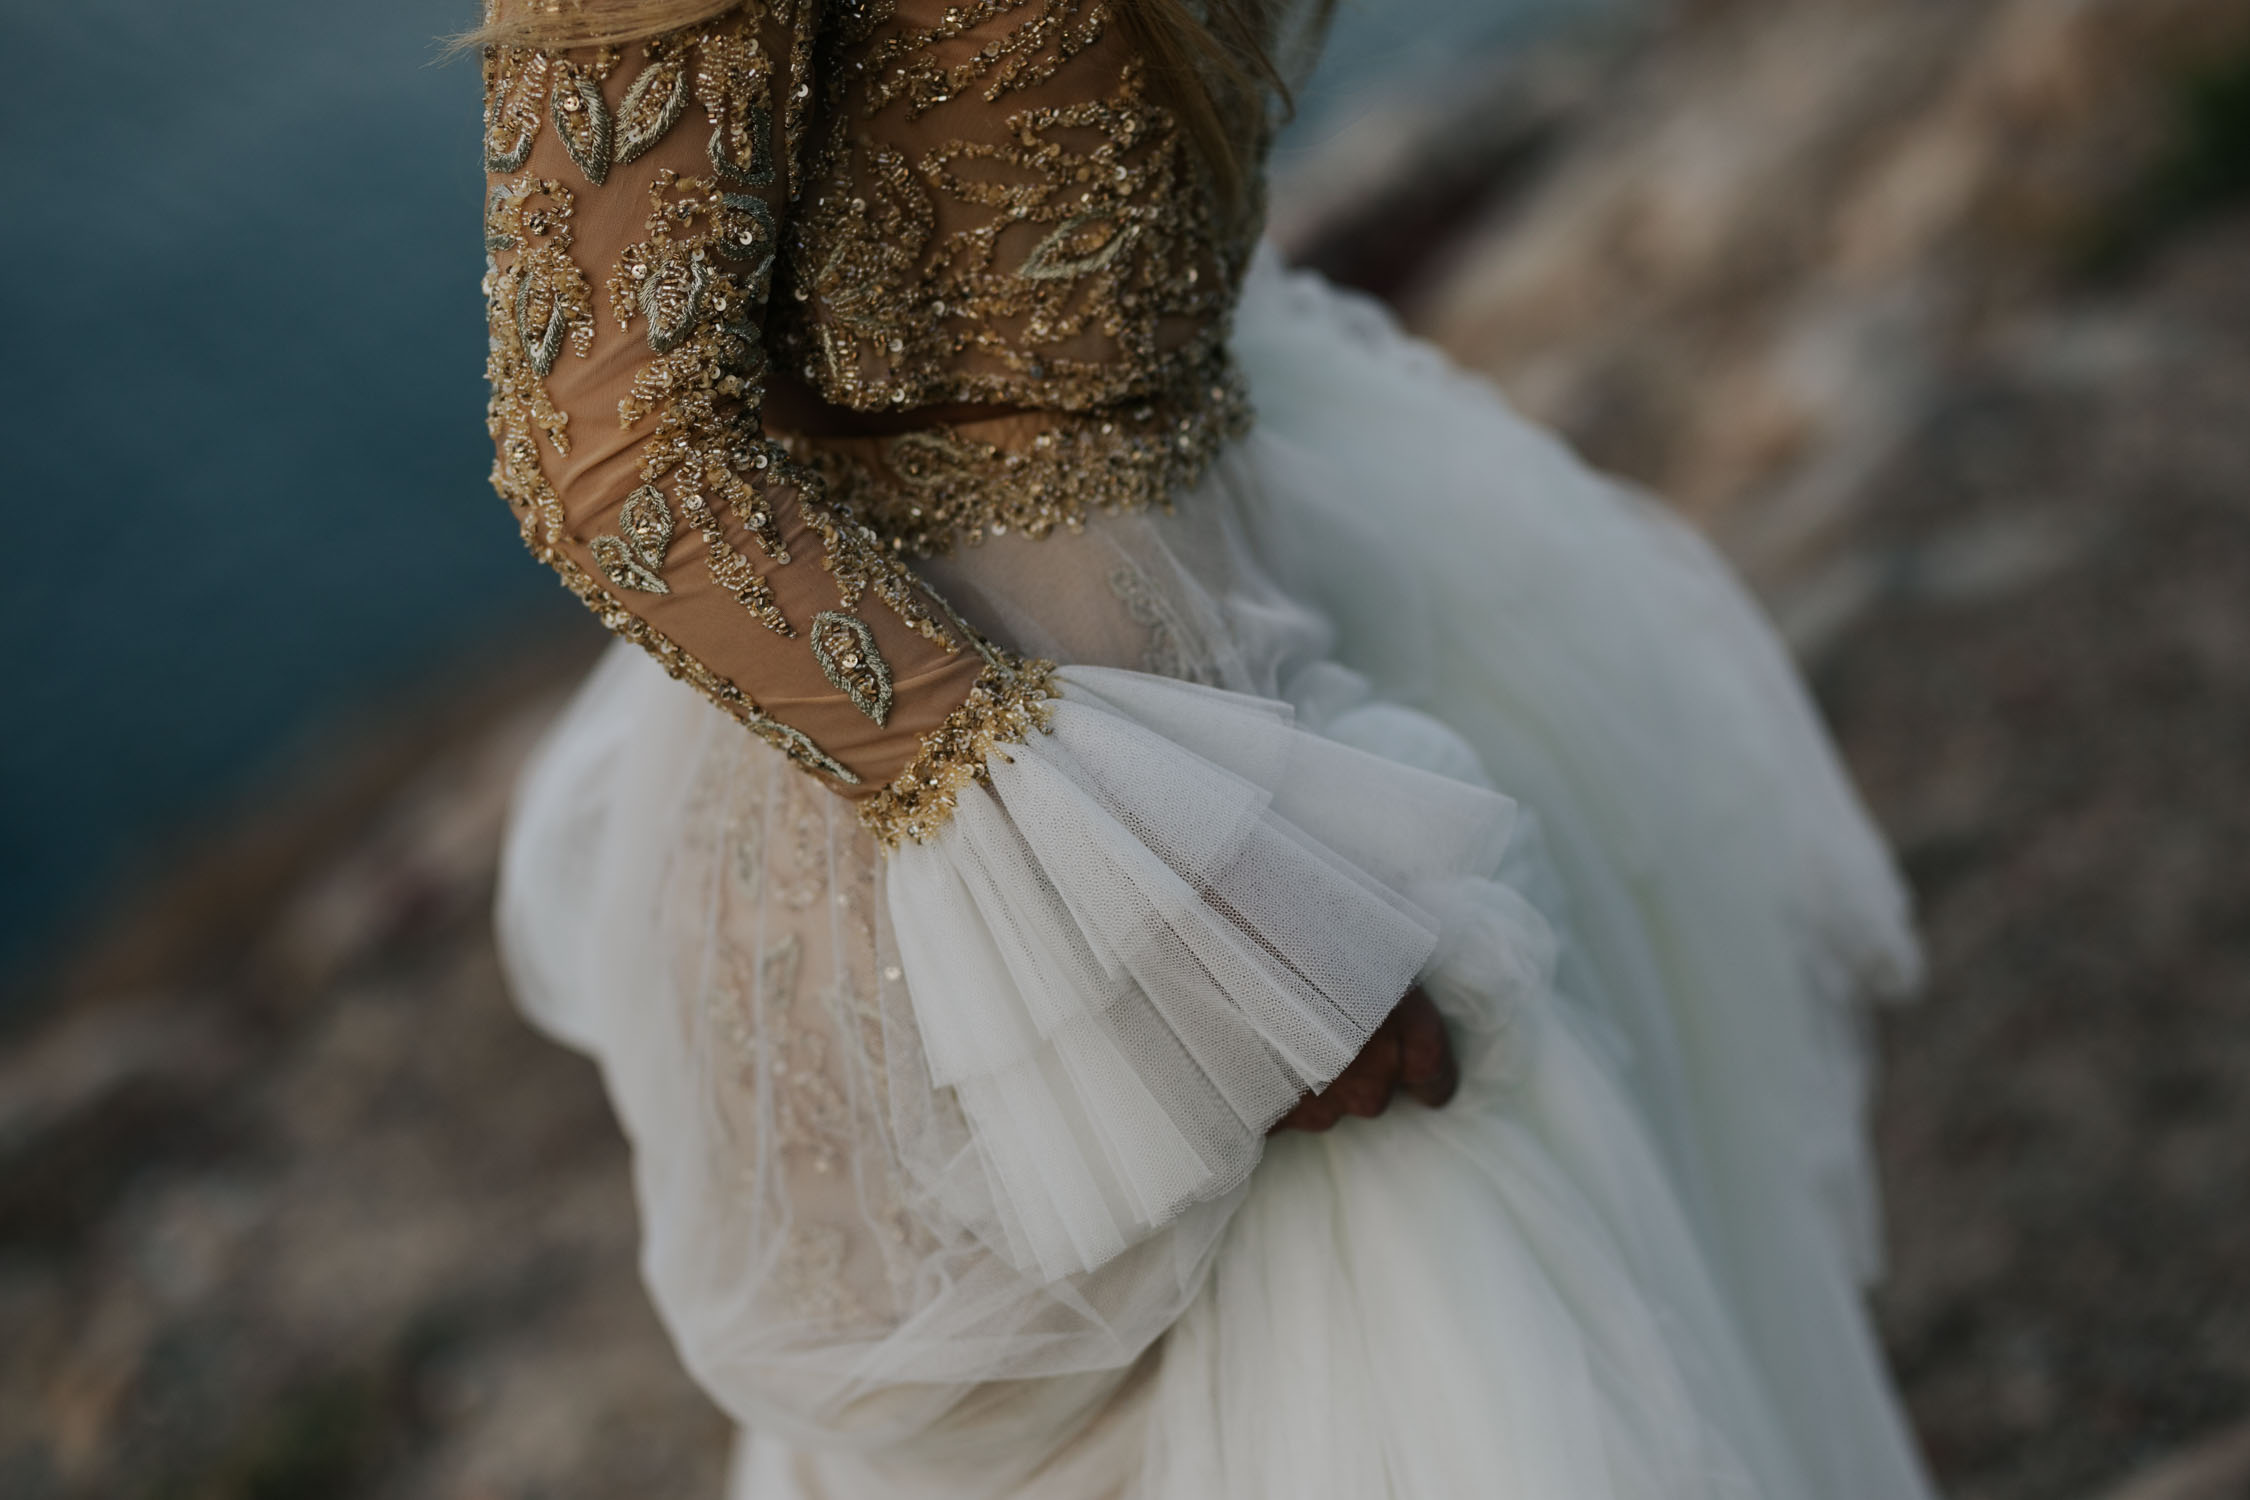 Boho bride wears gypsy wedding dress with flared long sleeves, sheer skirt and gold detailed top